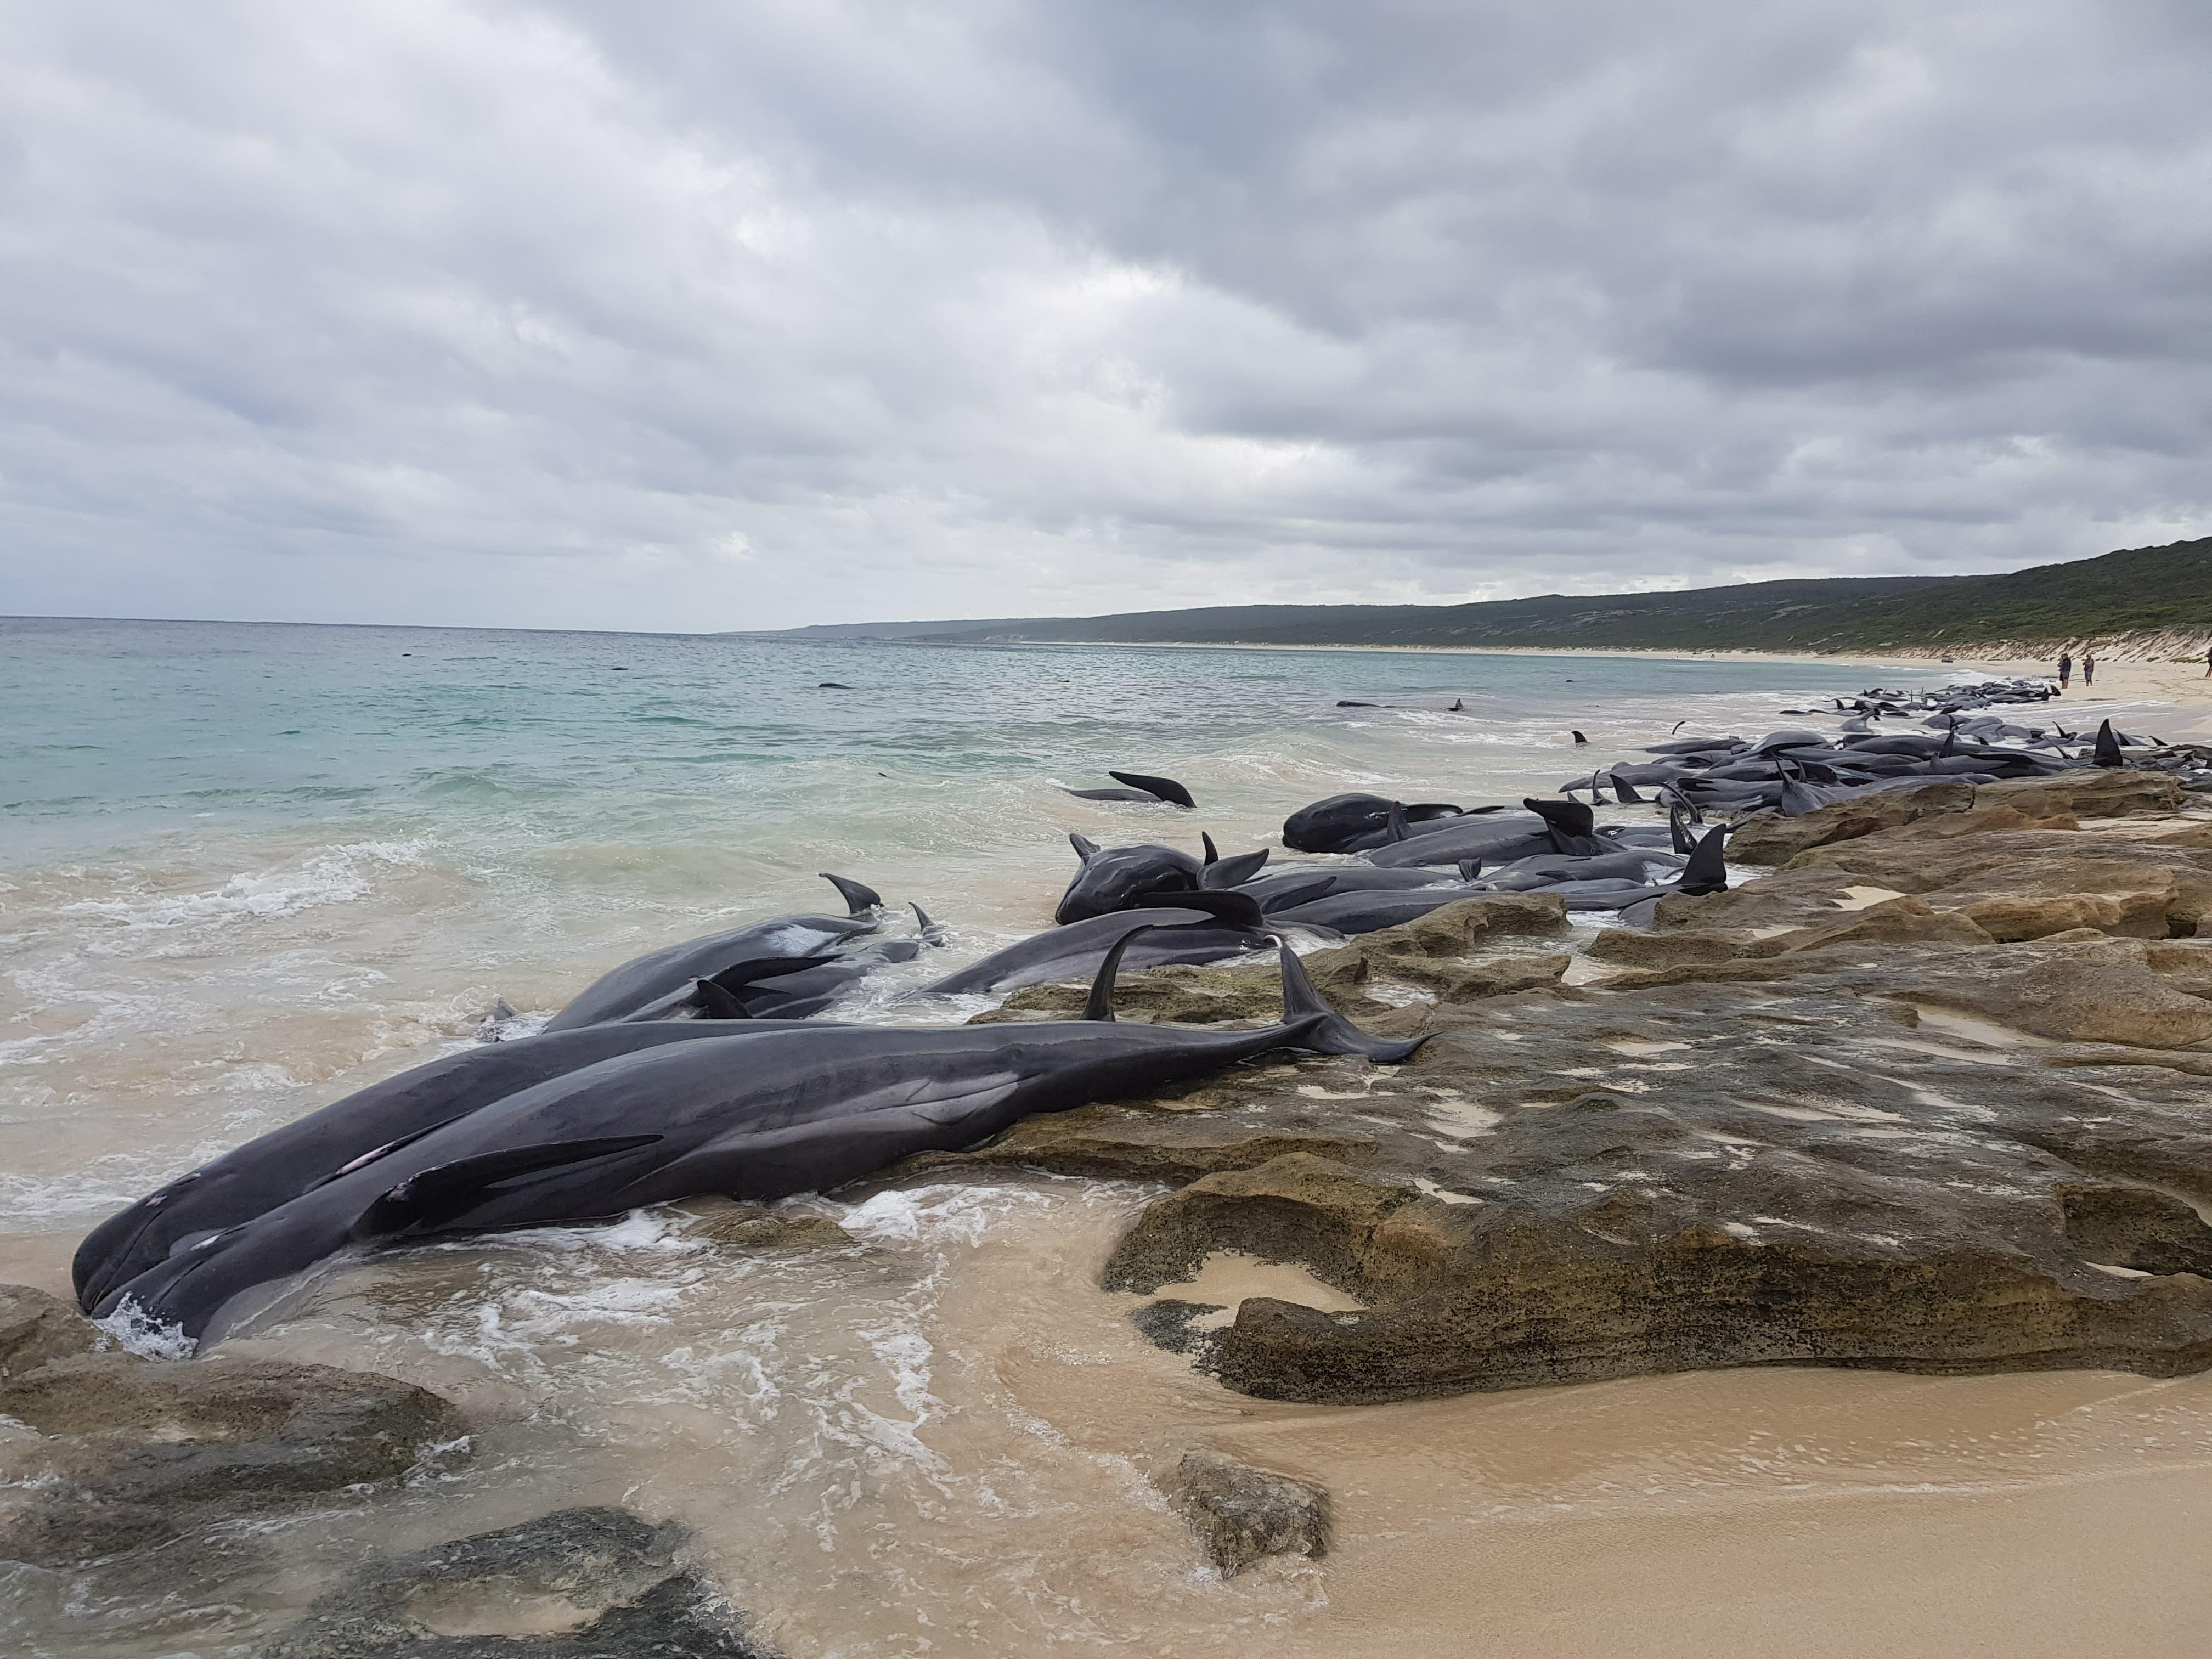 150 whales wash up on beach sparking huge rescue operation in Australia